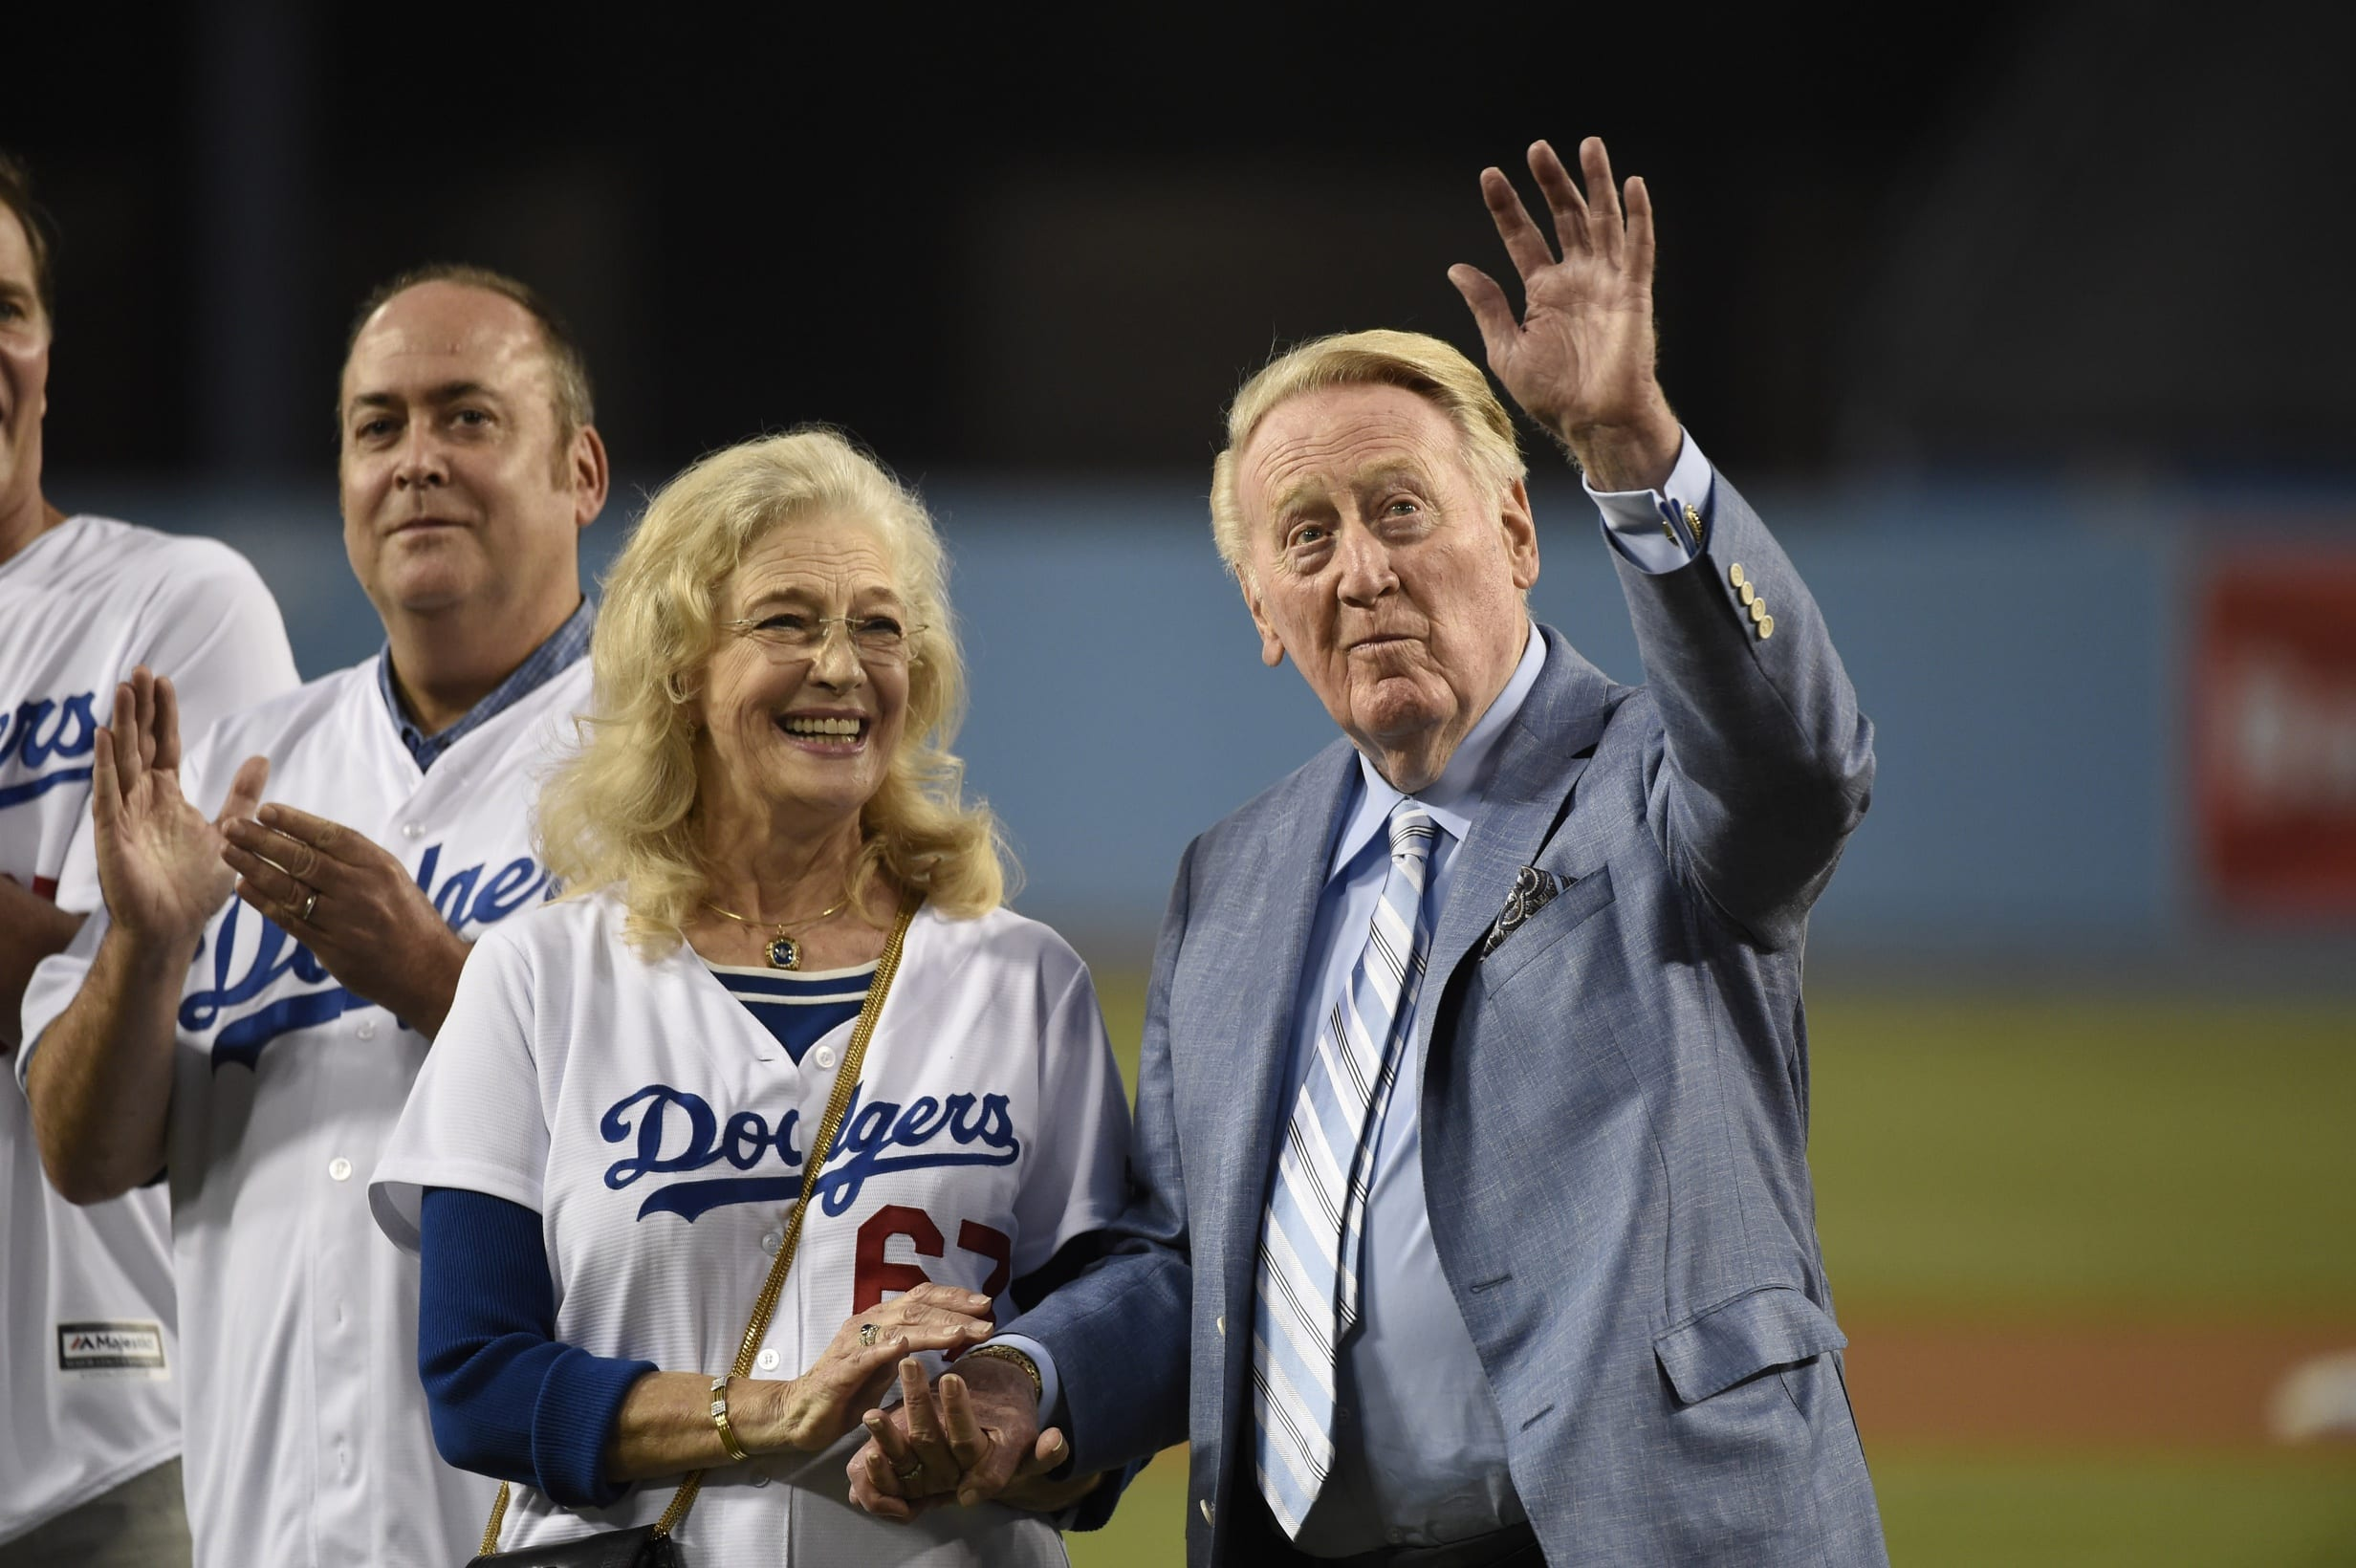 Vin Scully To Miss Postseason After Undergoing Medical Procedure